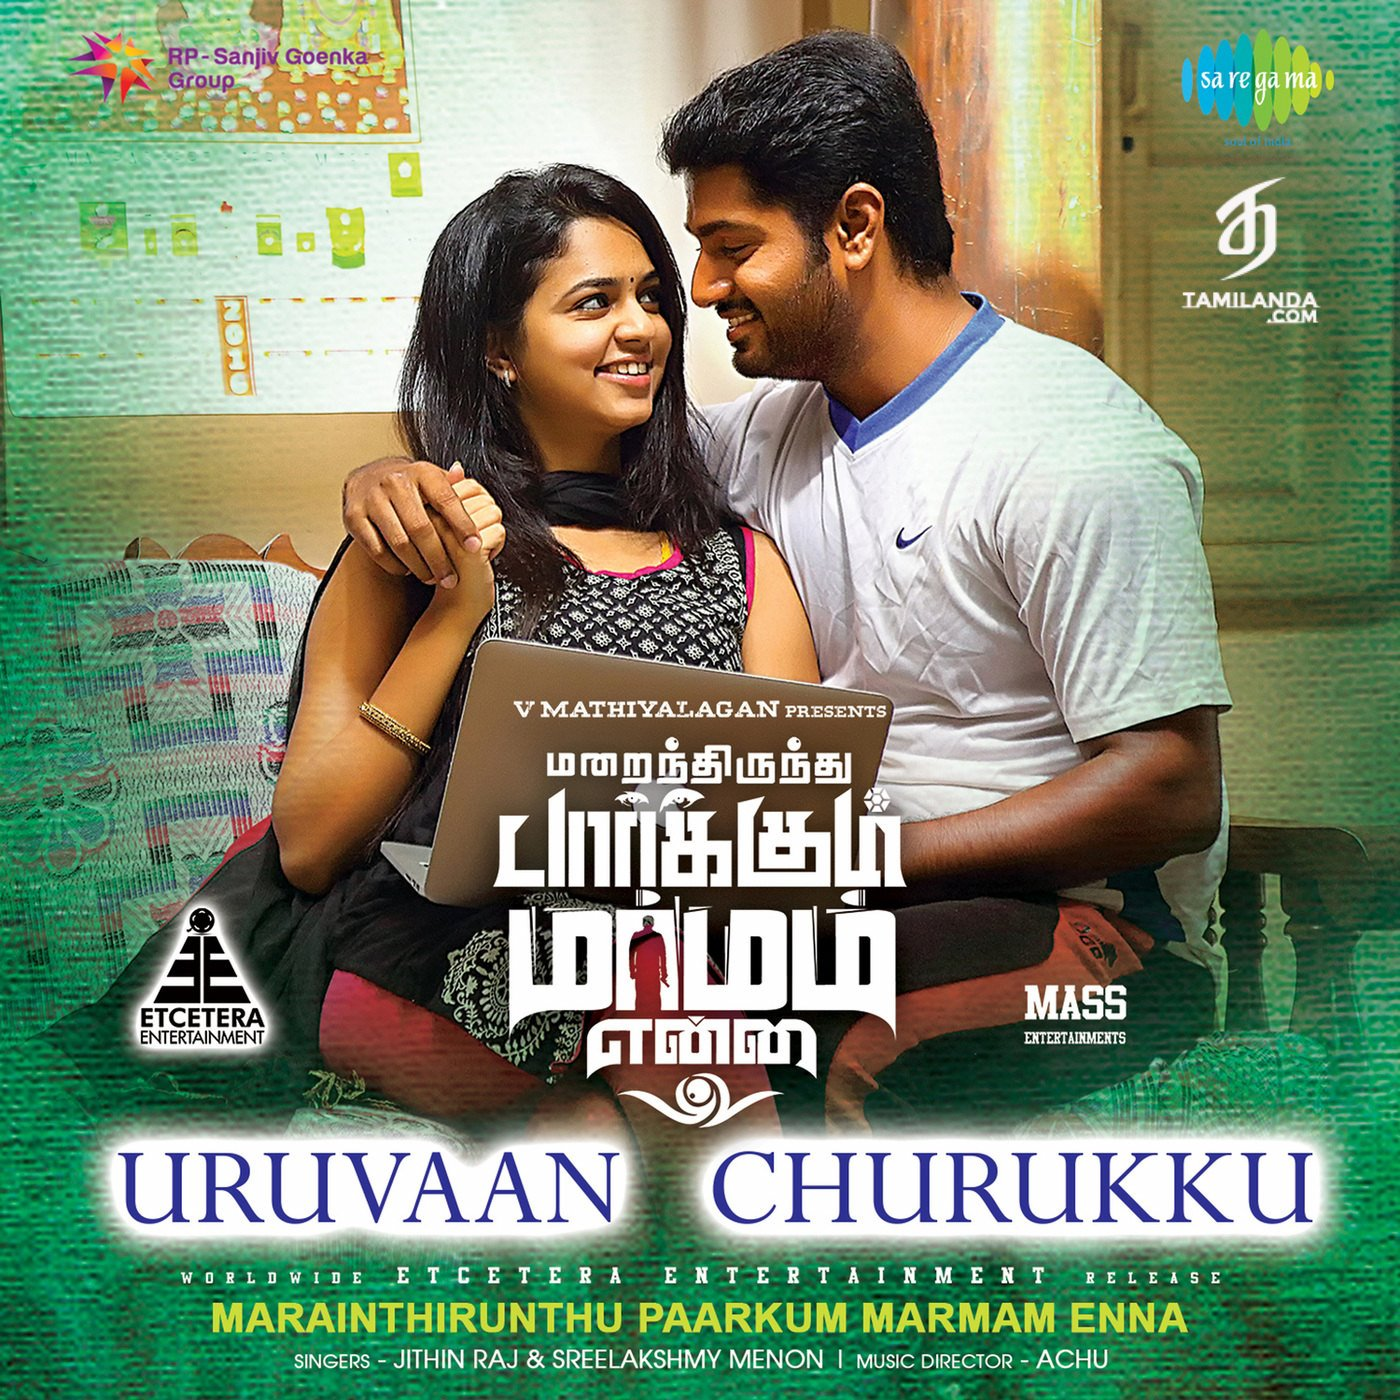 Marainthirunthu Paarkum Marmam Enna – Uruvaan Churukku 2nd Single Song in FLAC/WAV